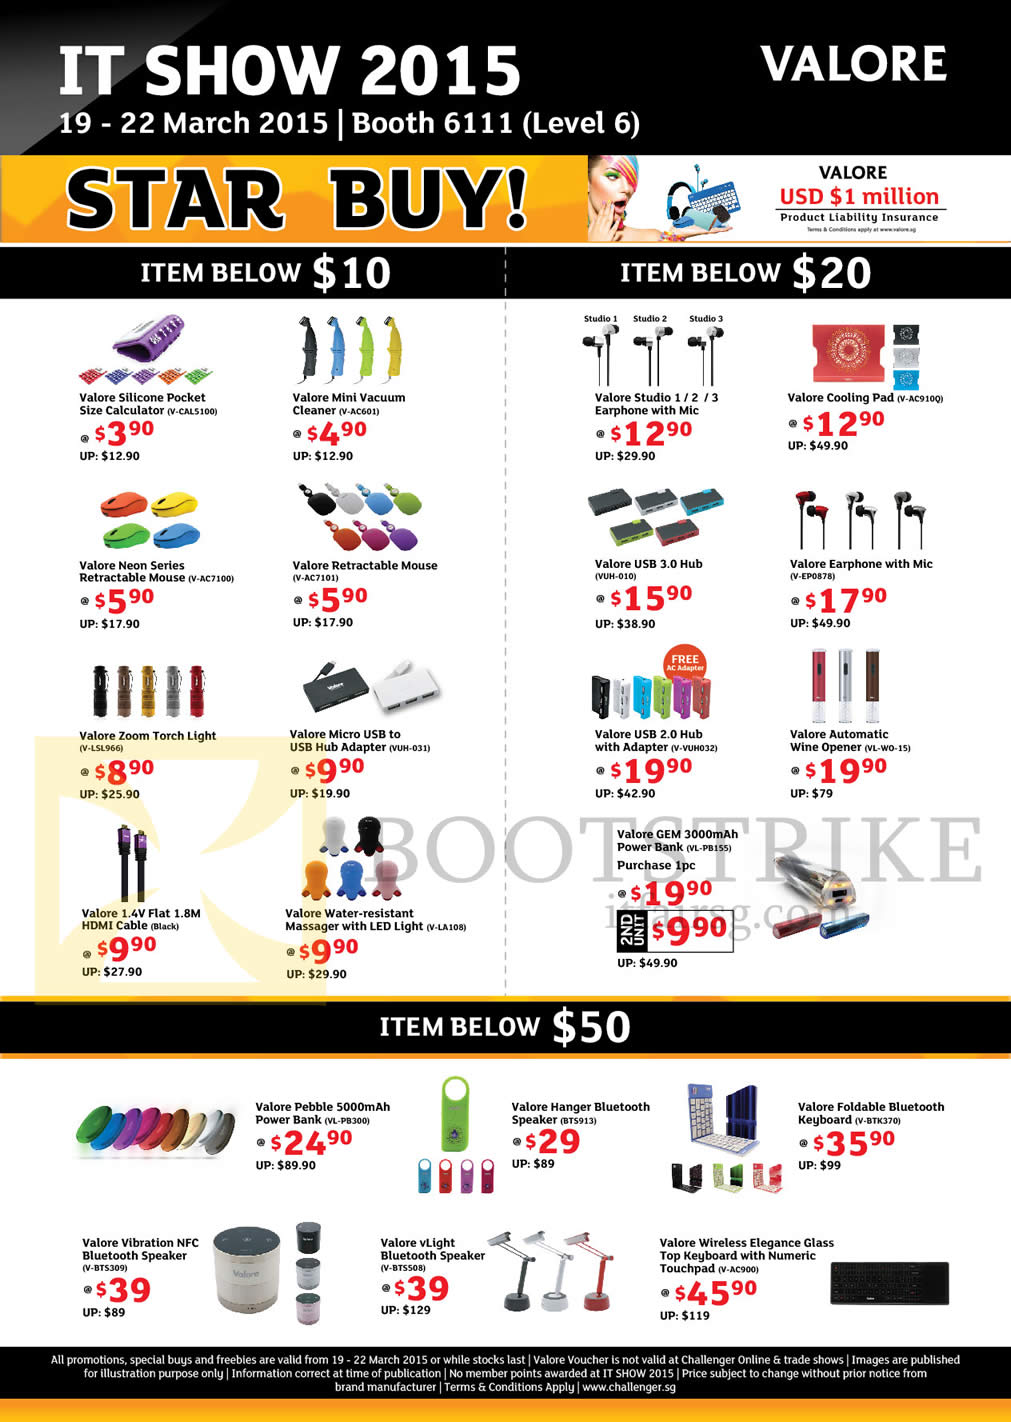 IT SHOW 2015 price list image brochure of Challenger Valore Accessories, Speaker, Keyboard, Power Bank, USB Hub, Earphone, Cooling Pad, Torch Light